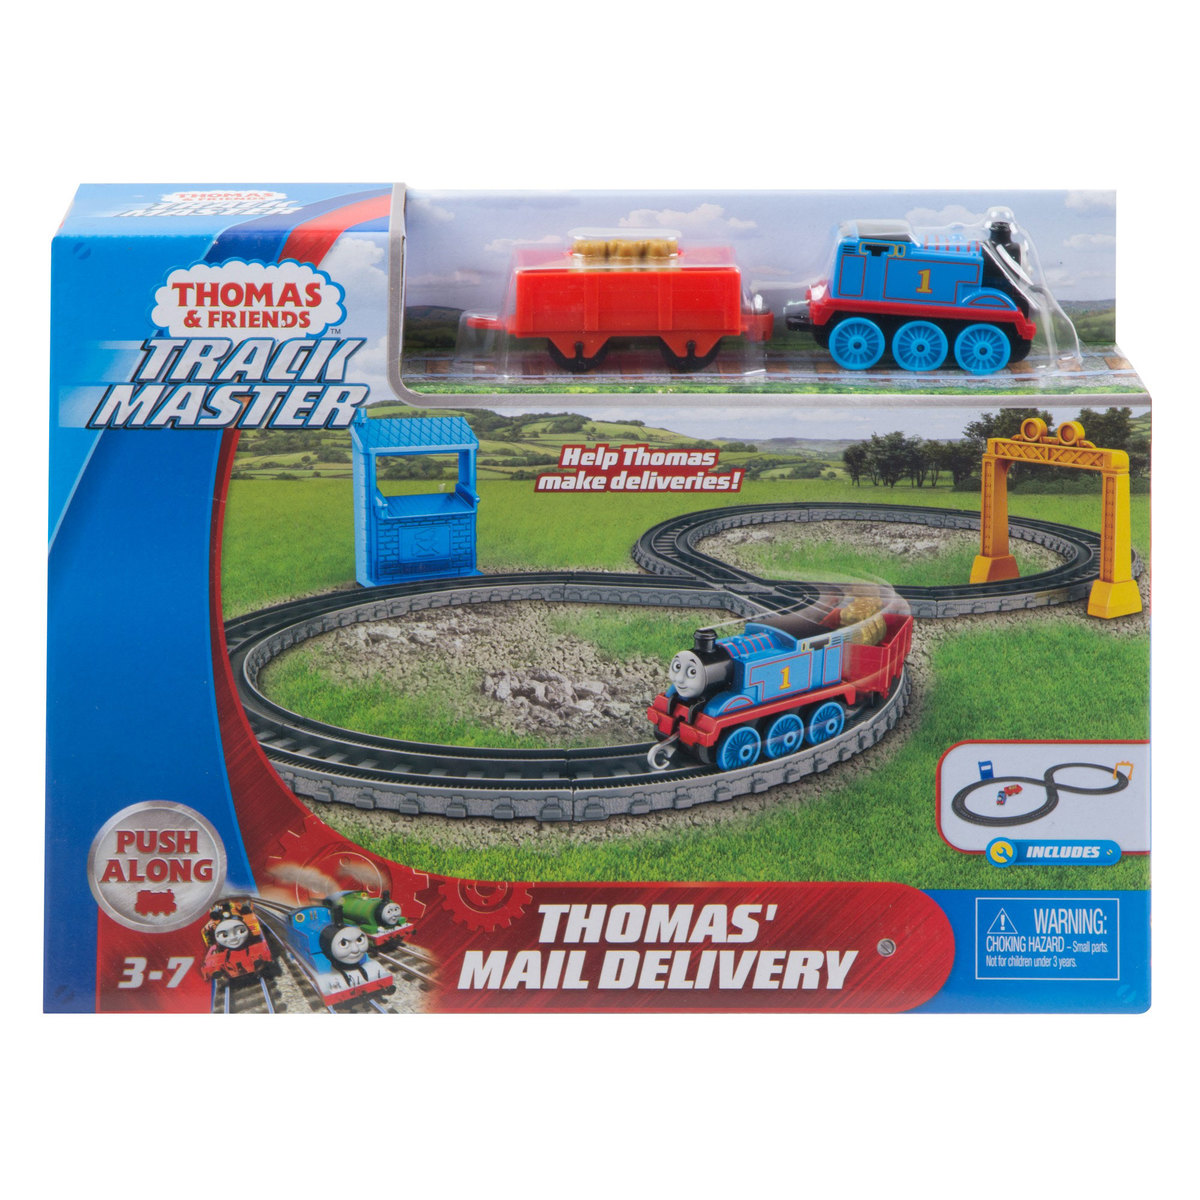 Thomas & Friends: TrackMaster Thomas' Mail Delivery from Early Learning Center